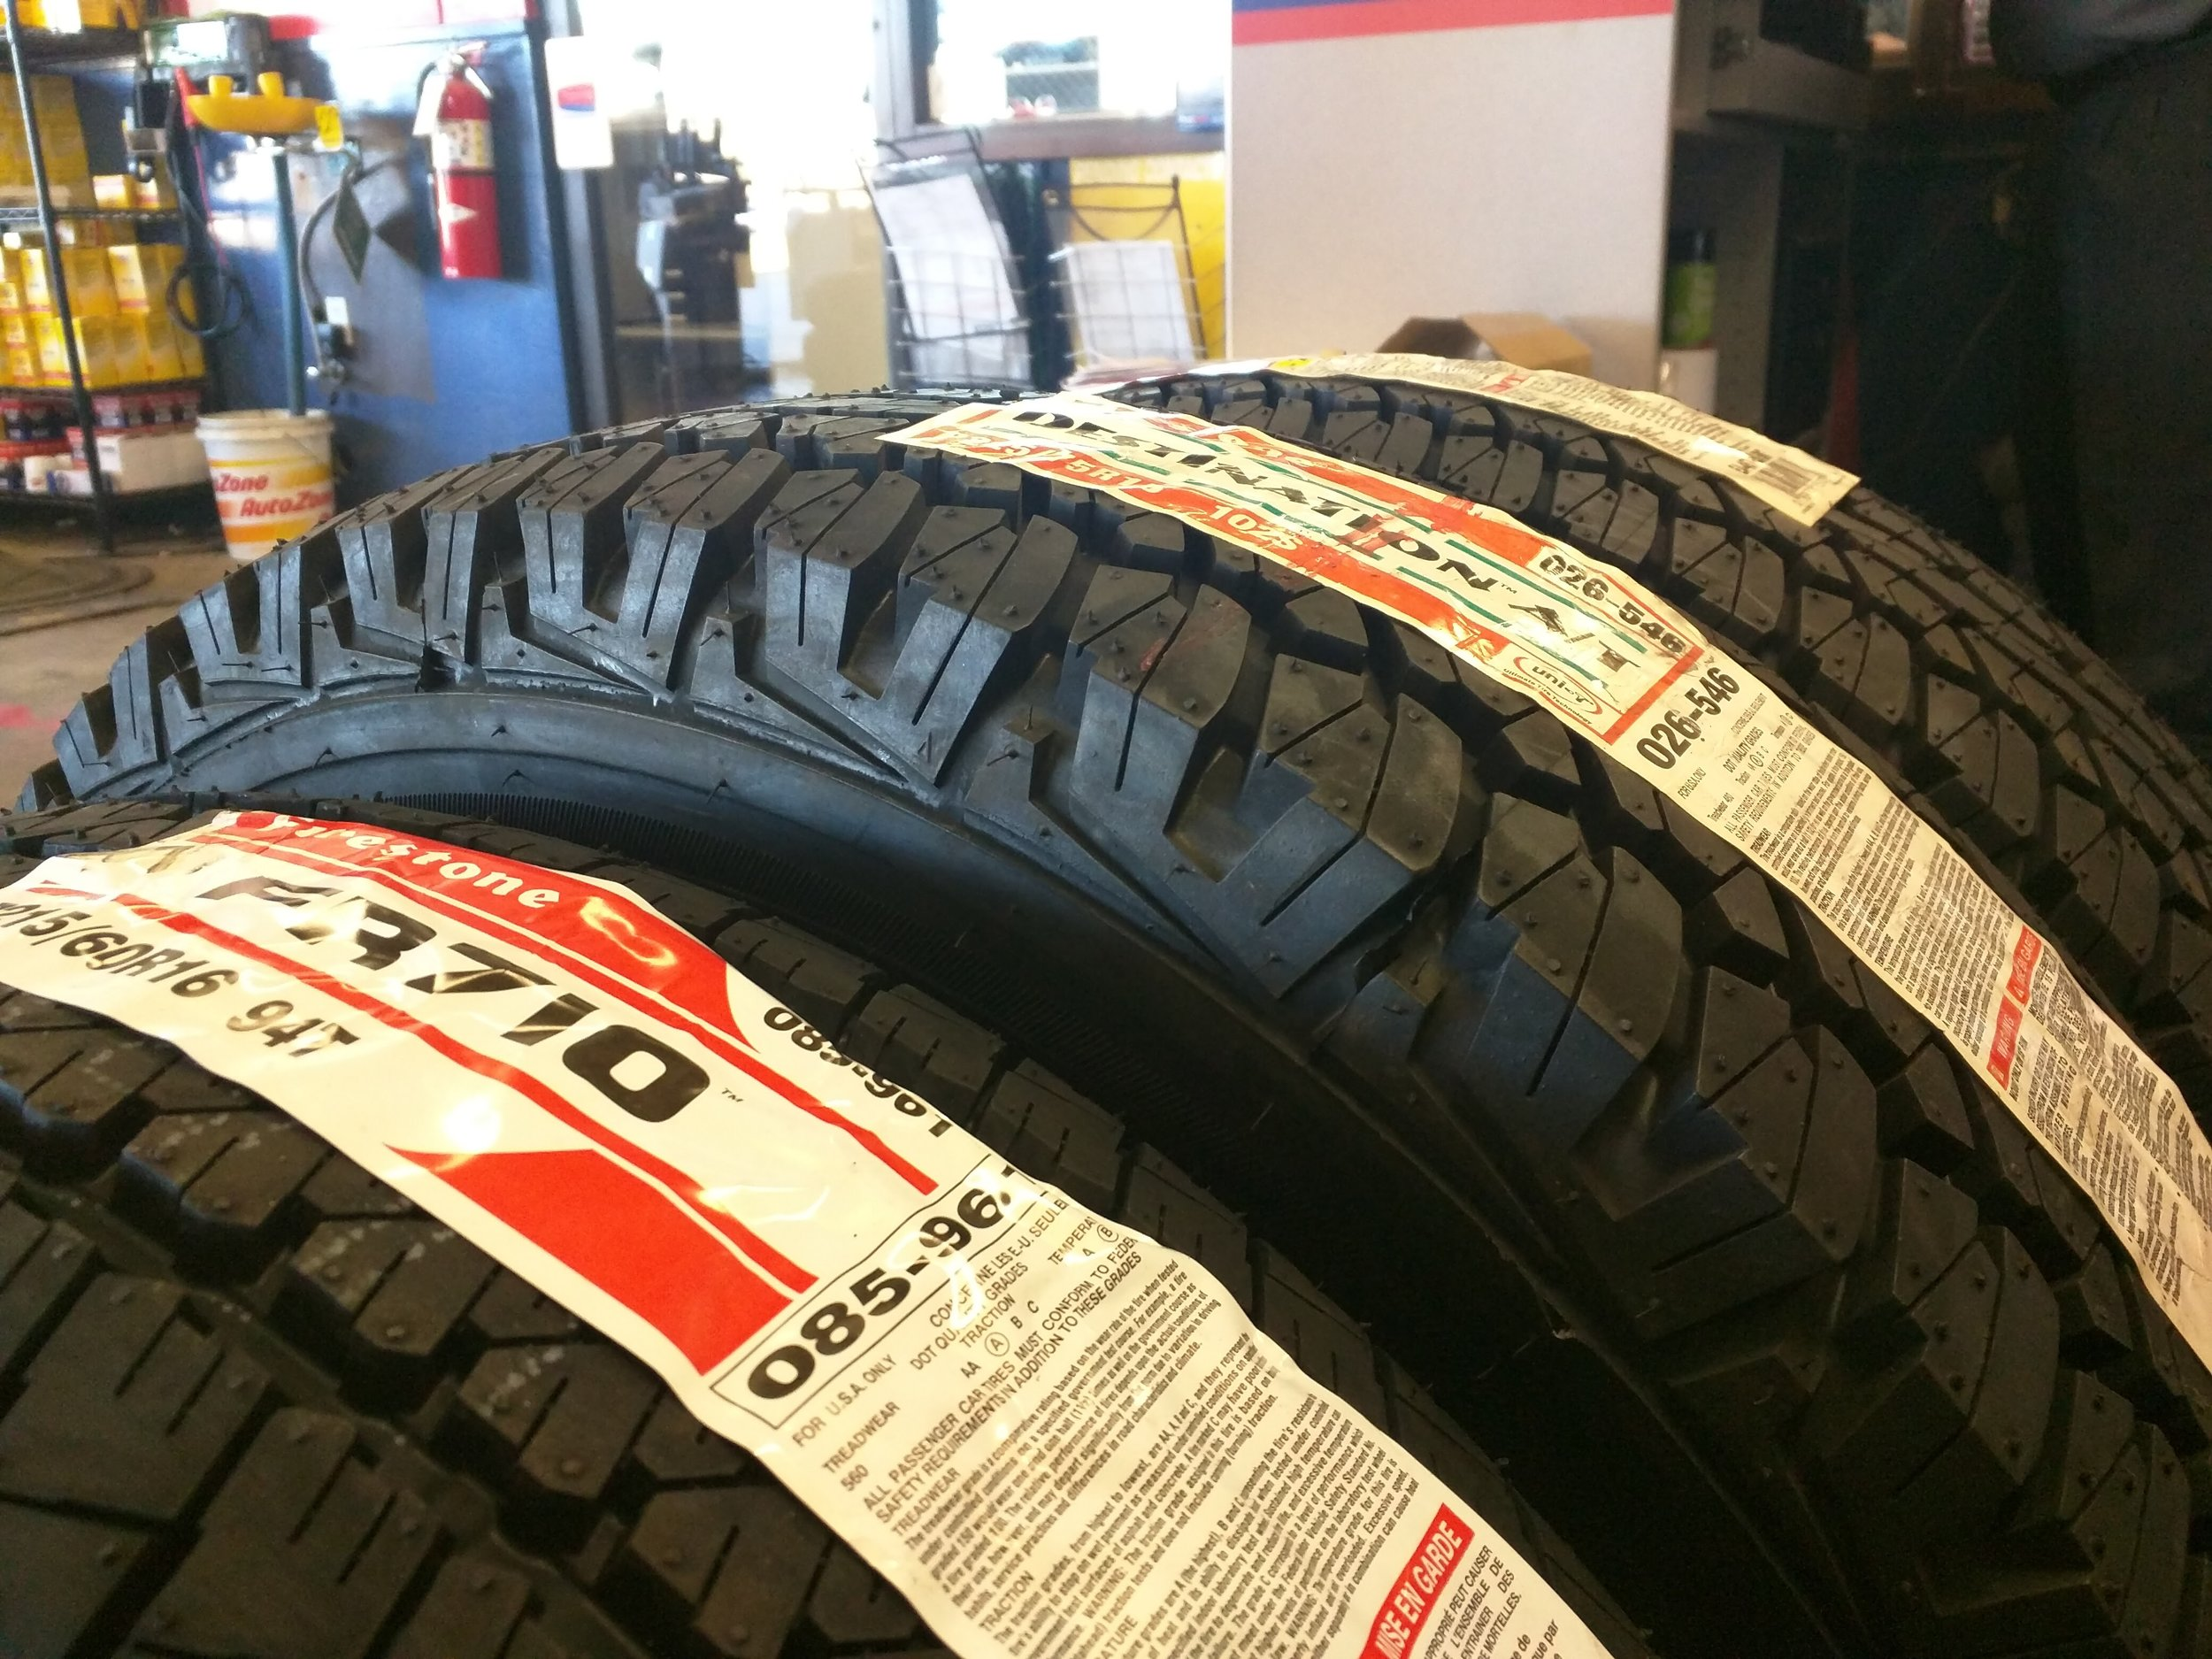 Stock size tire up front 215/60r16 , 225/75 in the middle and 235/70 on the far side